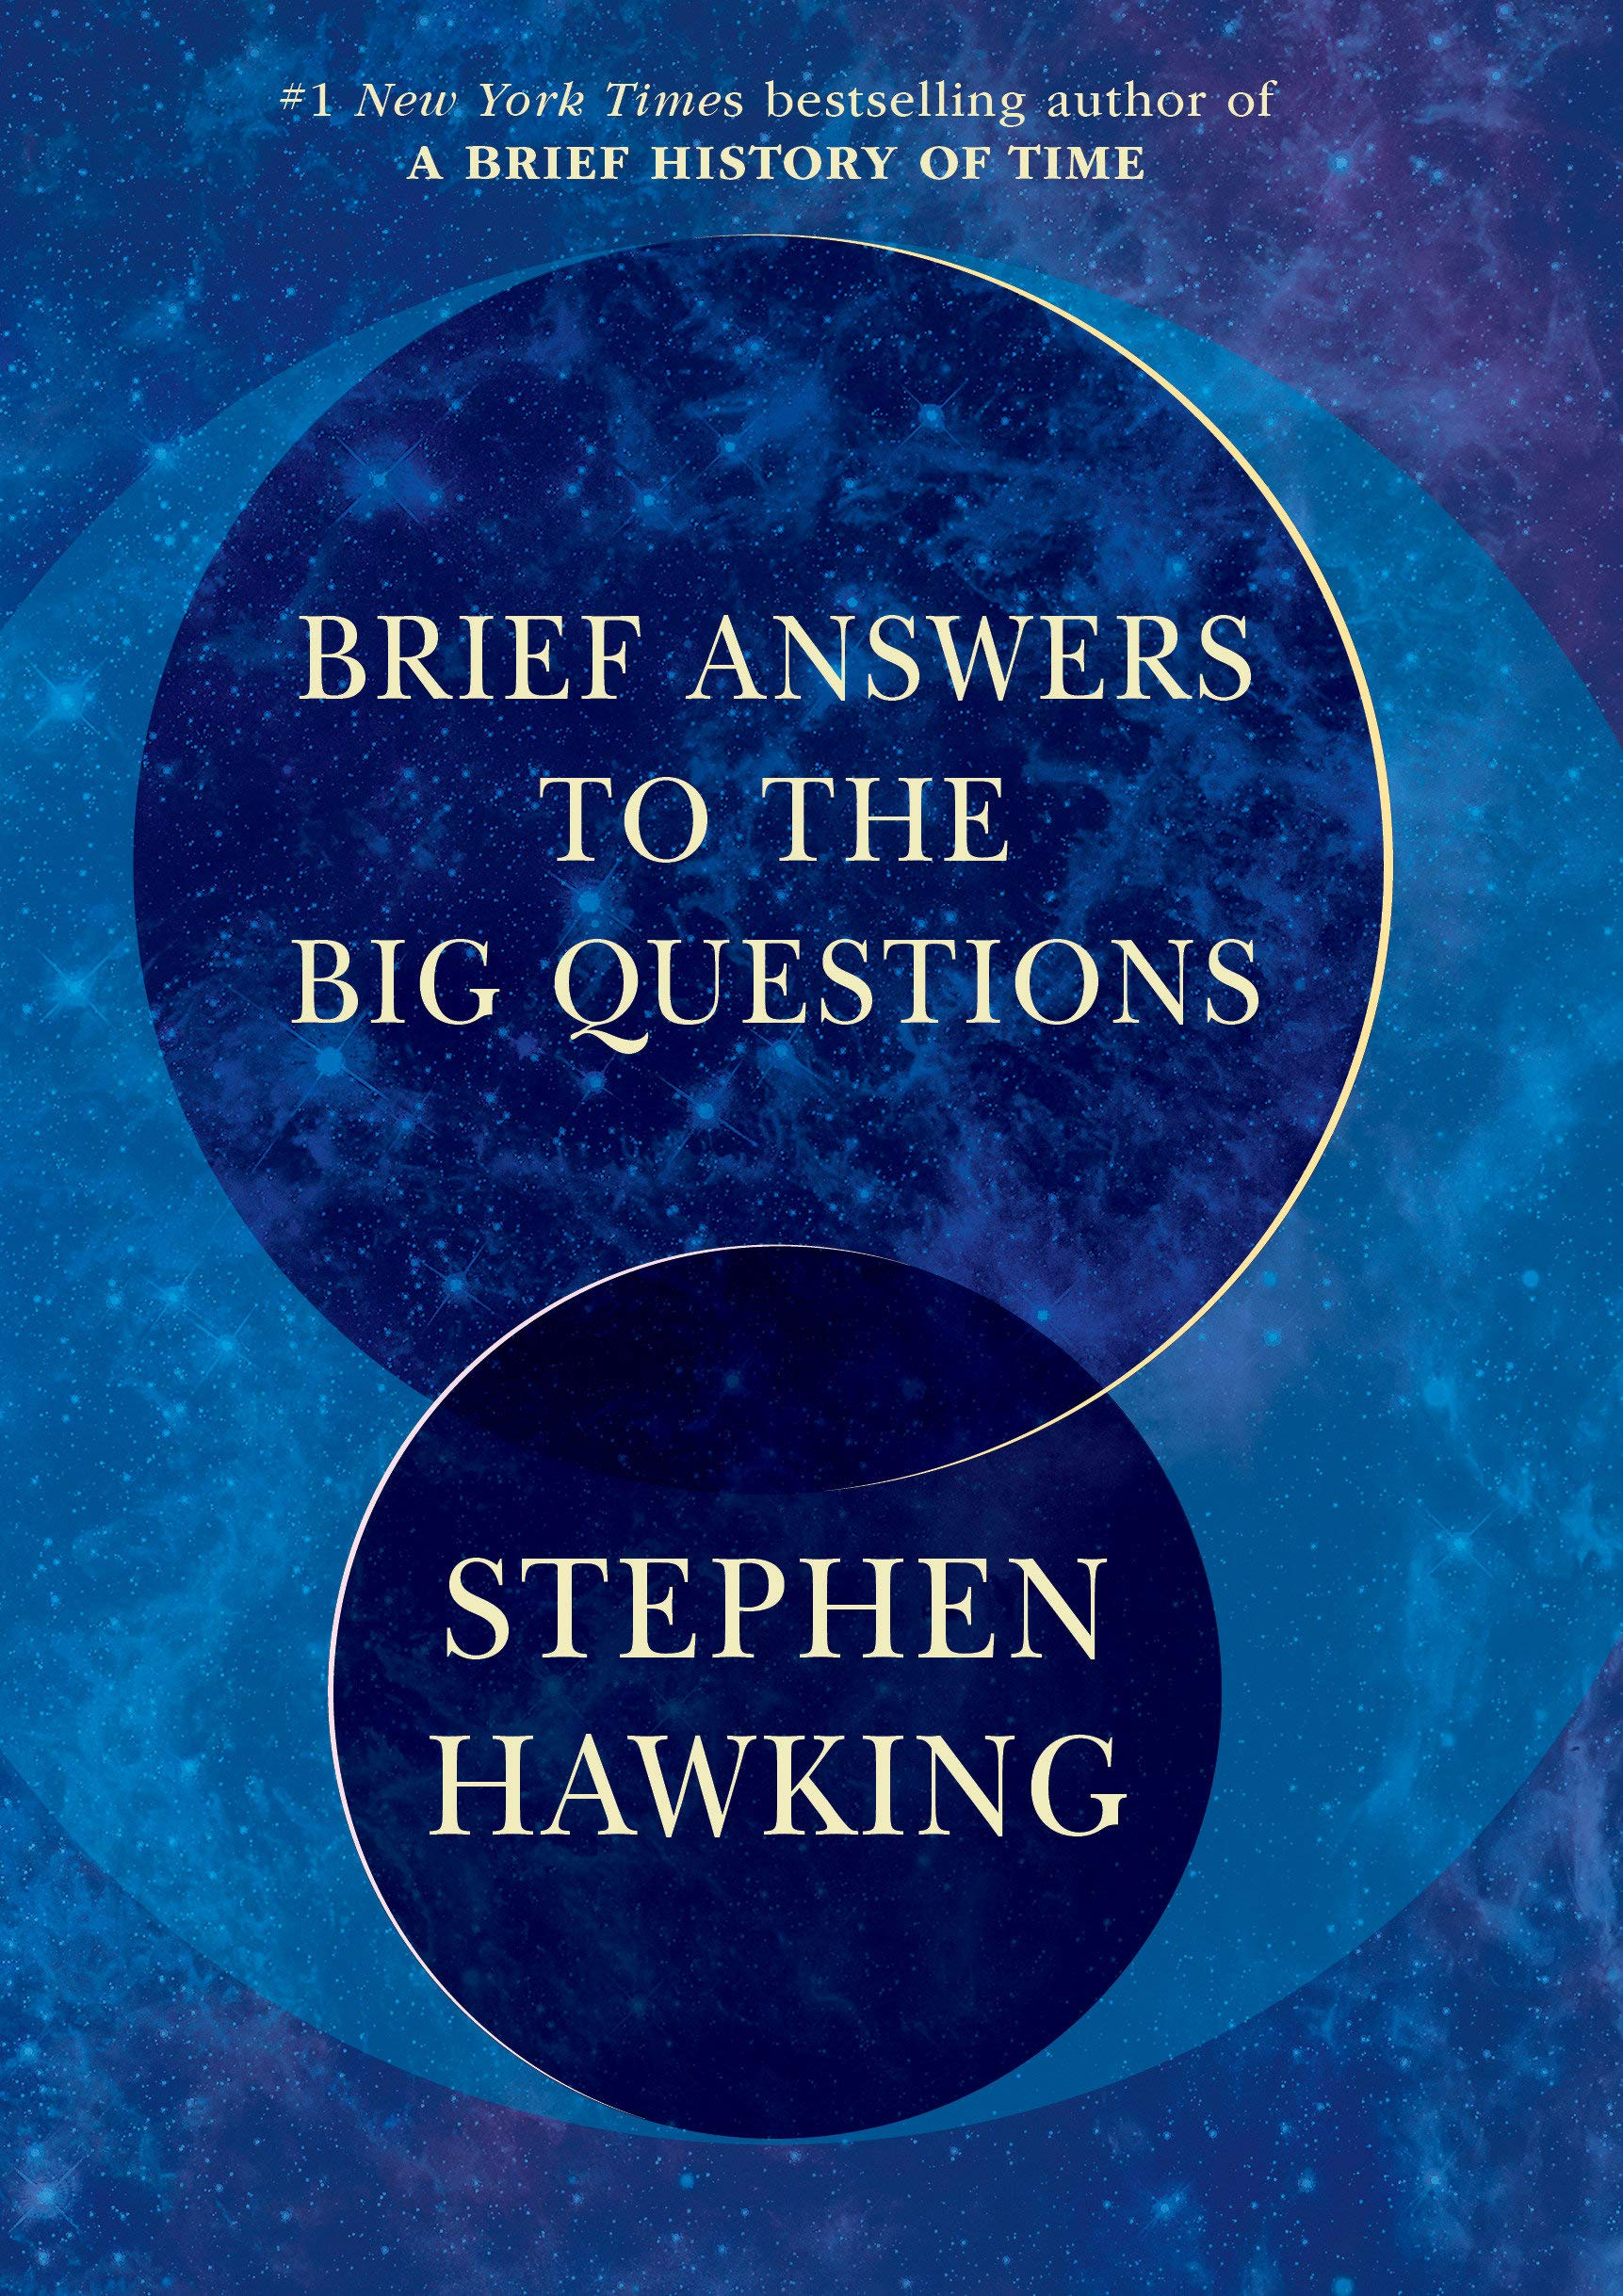 Brief Answers to the Big Questions: Stephen Hawking